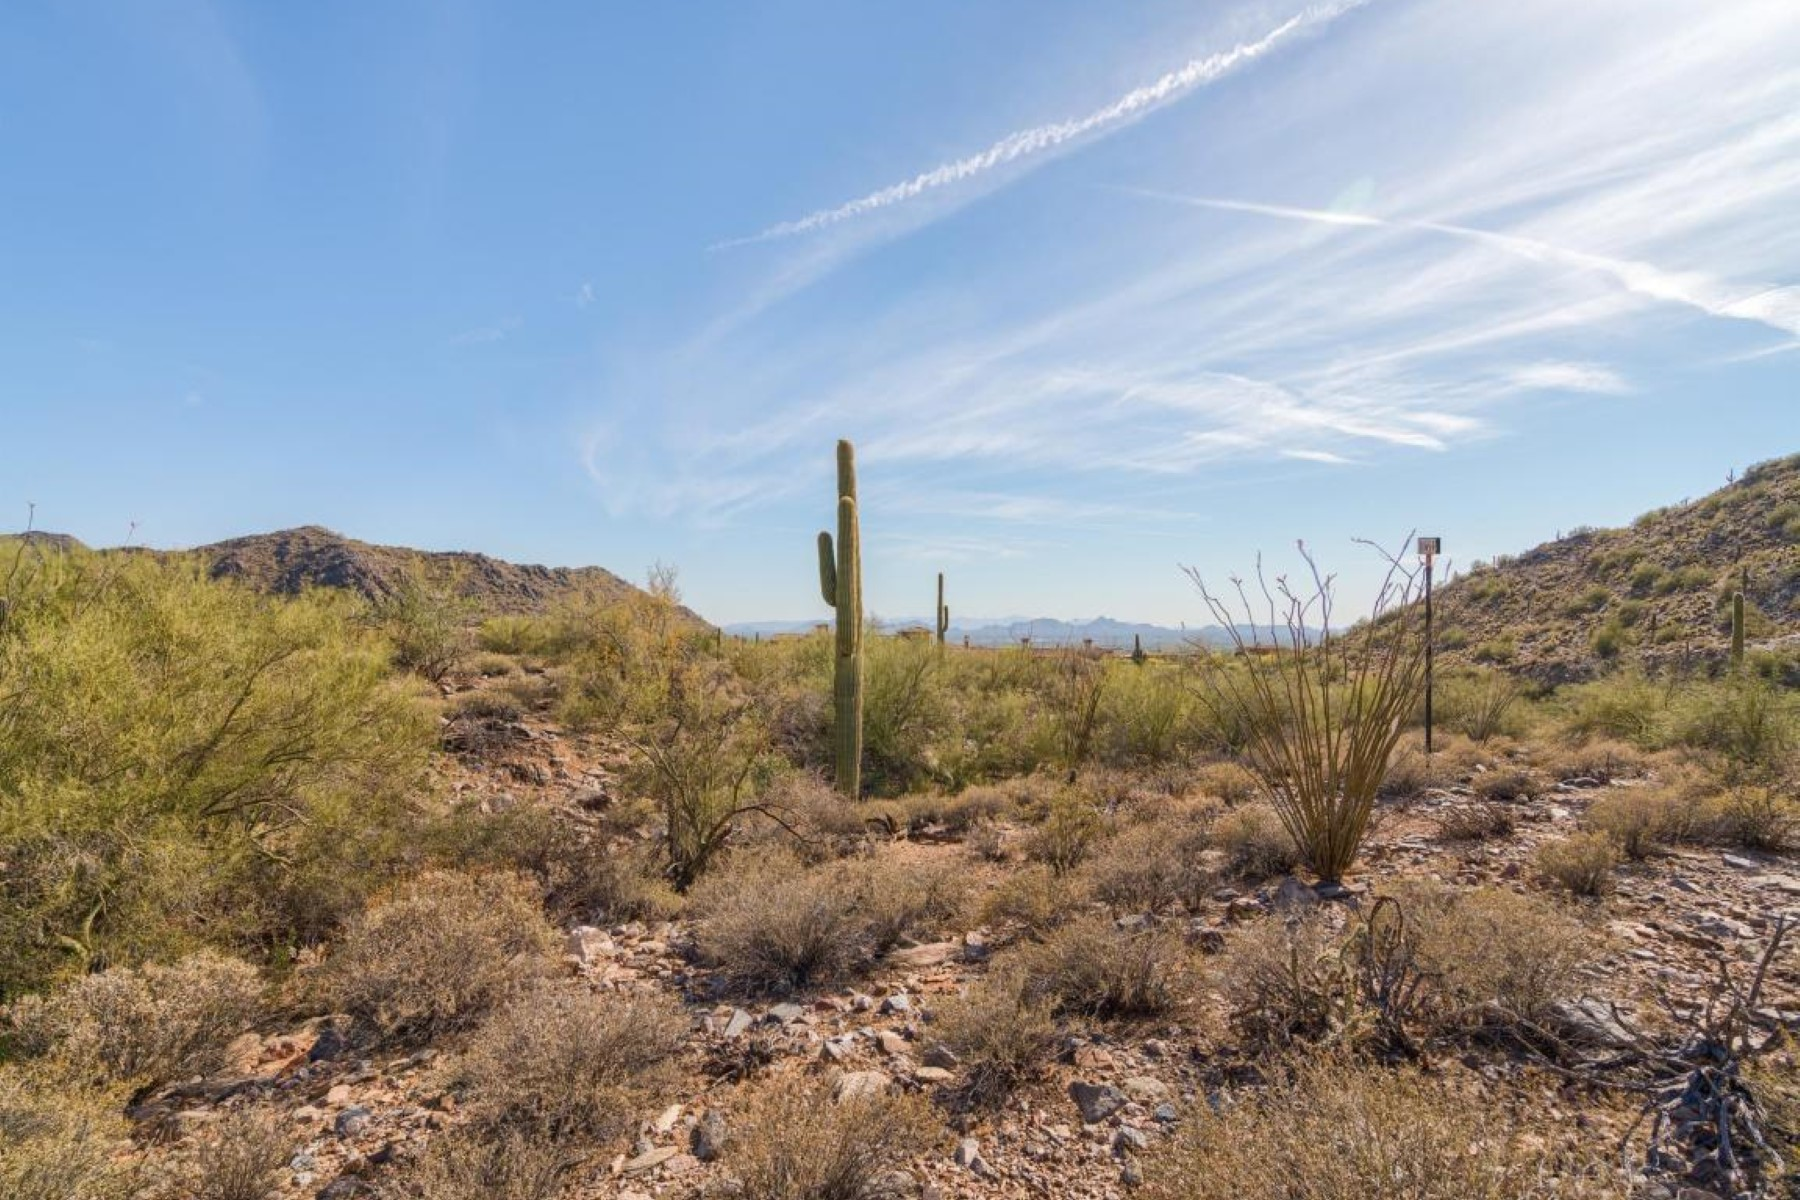 Terrain pour l Vente à 2.74 acre lot located in the Upper Canyon of Silverleaf 10728 E Wingspan Way #1664 Scottsdale, Arizona, 85255 États-Unis